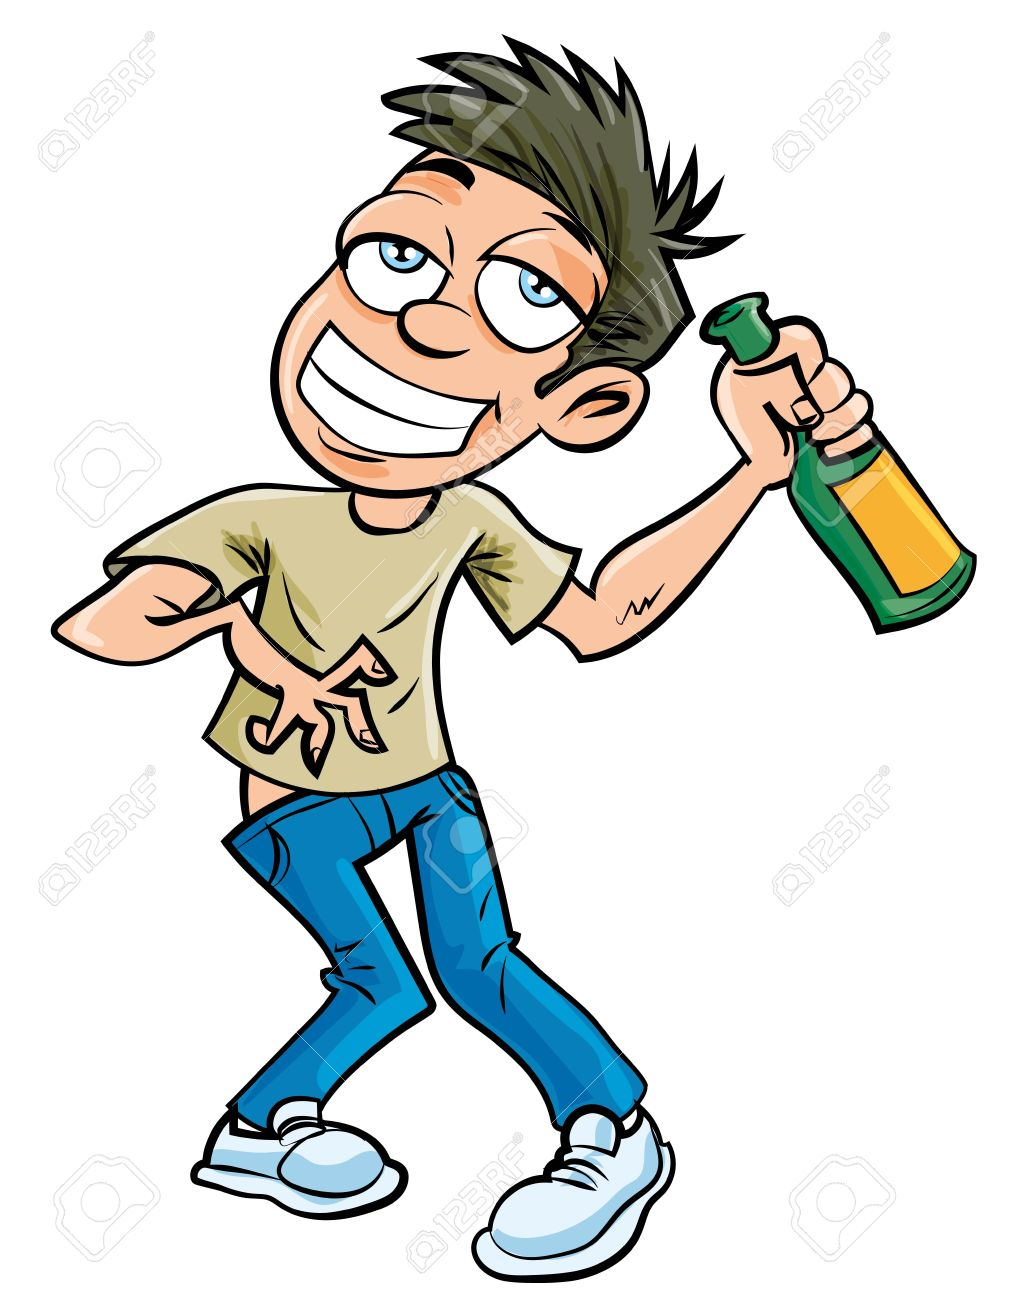 Drunk Clipart at GetDrawings.com | Free for personal use Drunk ...